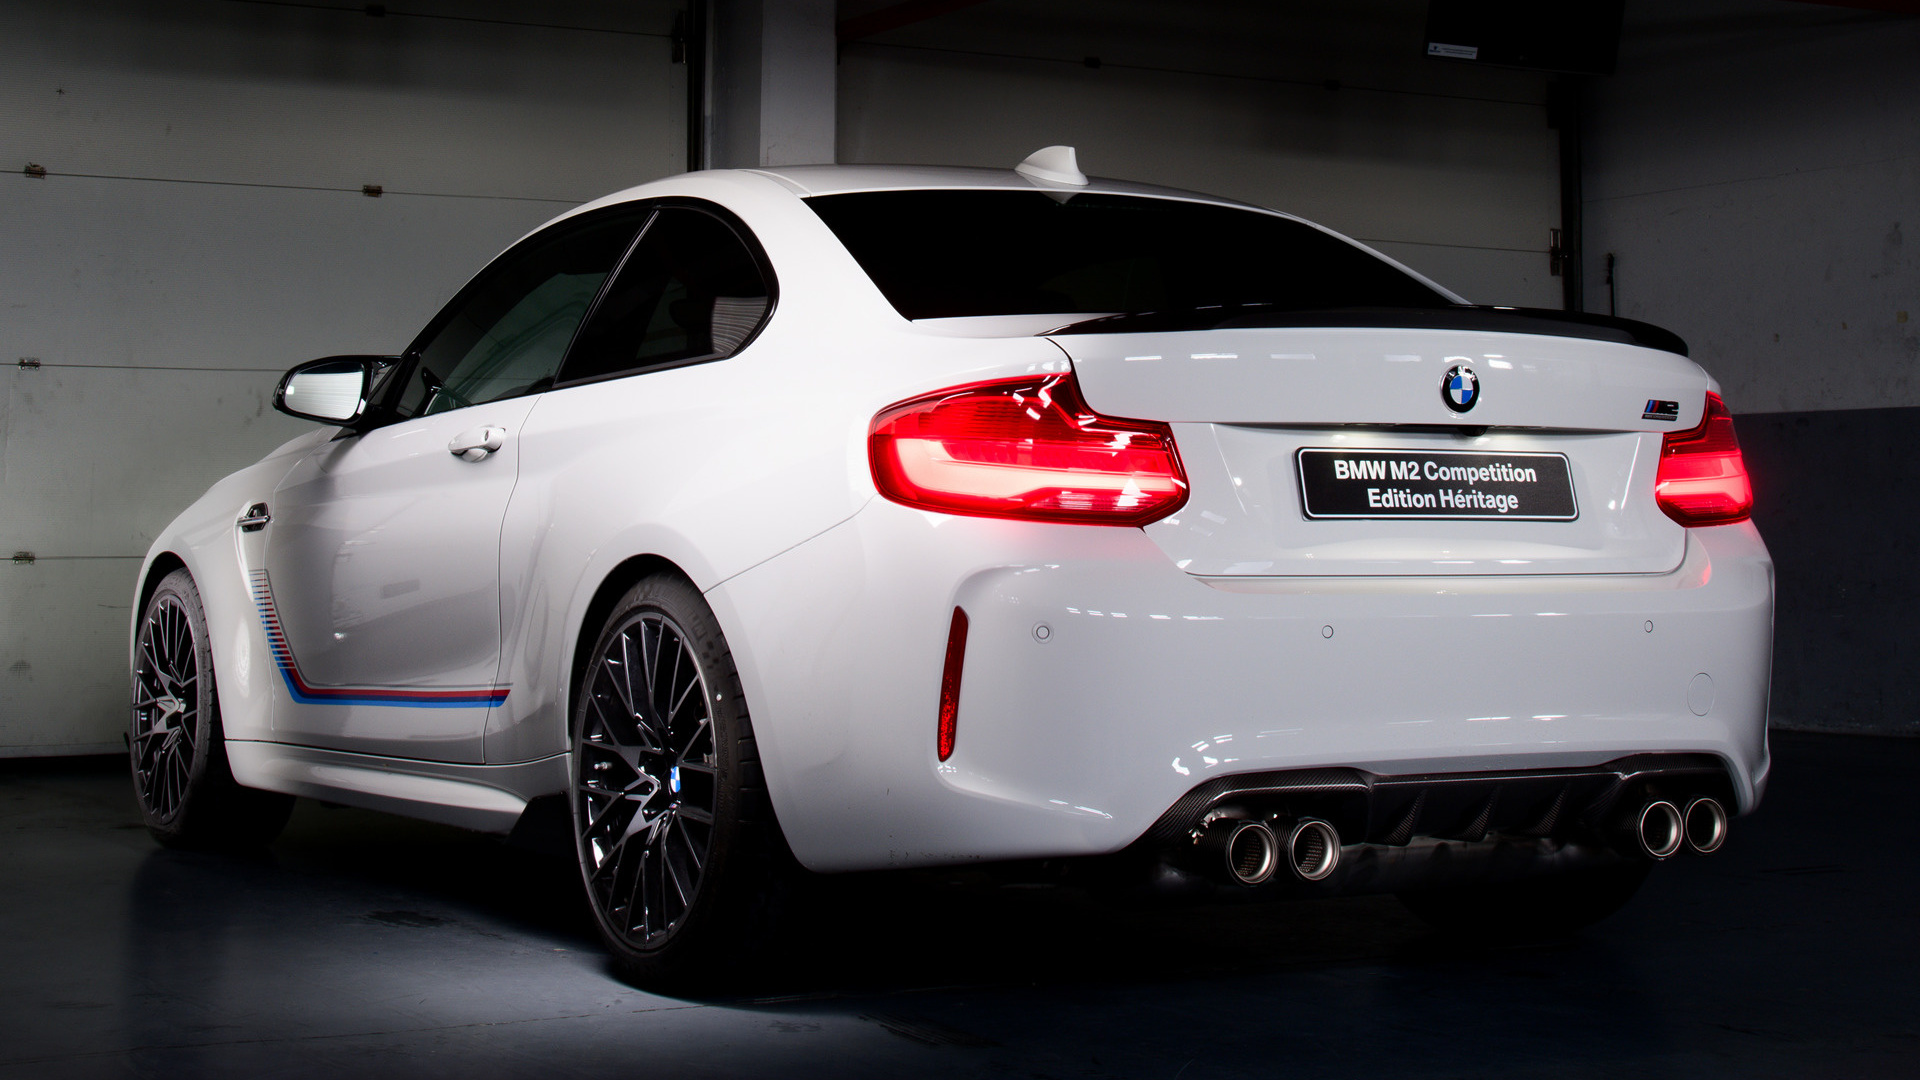 Heritage Volkswagen Subaru >> 2019 BMW M2 Coupe Competition Heritage Edition - Wallpapers and HD Images | Car Pixel